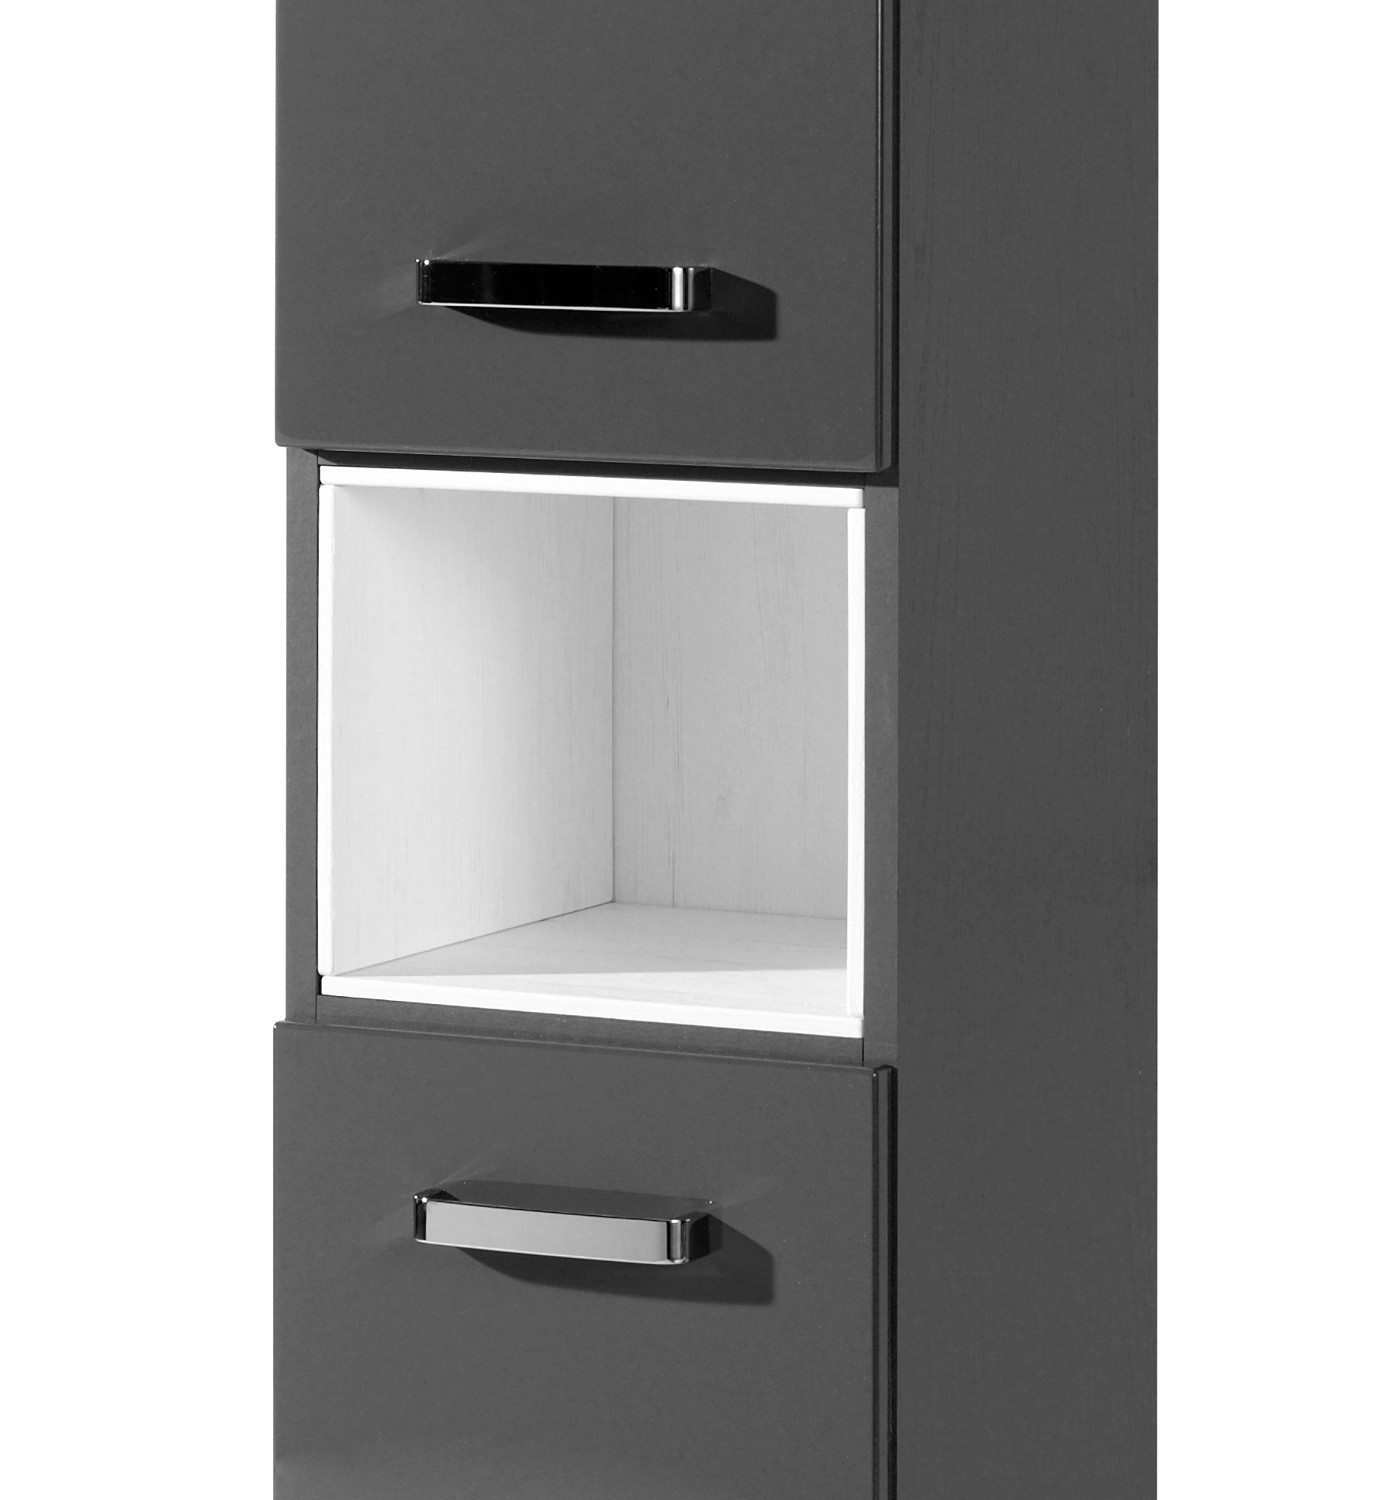 neu badezimmer hochschrank ancona badschrank mit 2 t ren seitenschrank 30cm grau ebay. Black Bedroom Furniture Sets. Home Design Ideas